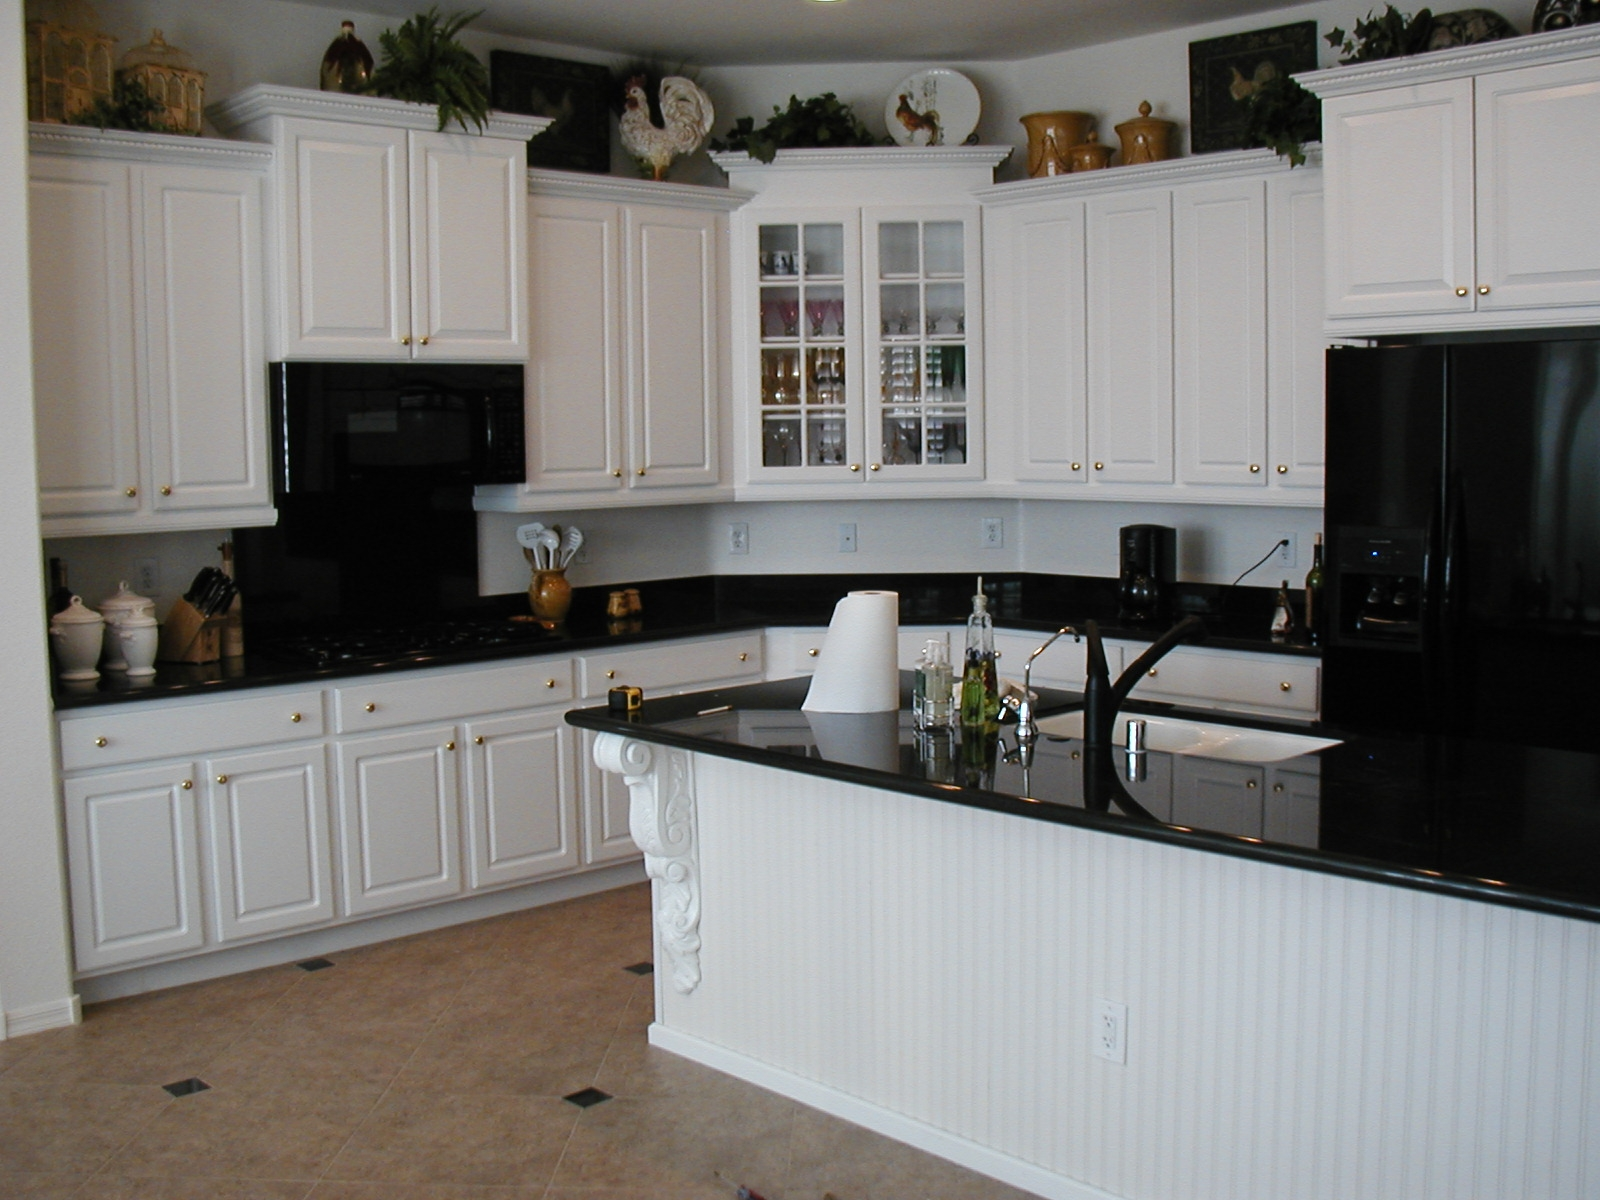 black kitchen cabinets and white appliances photo - 2